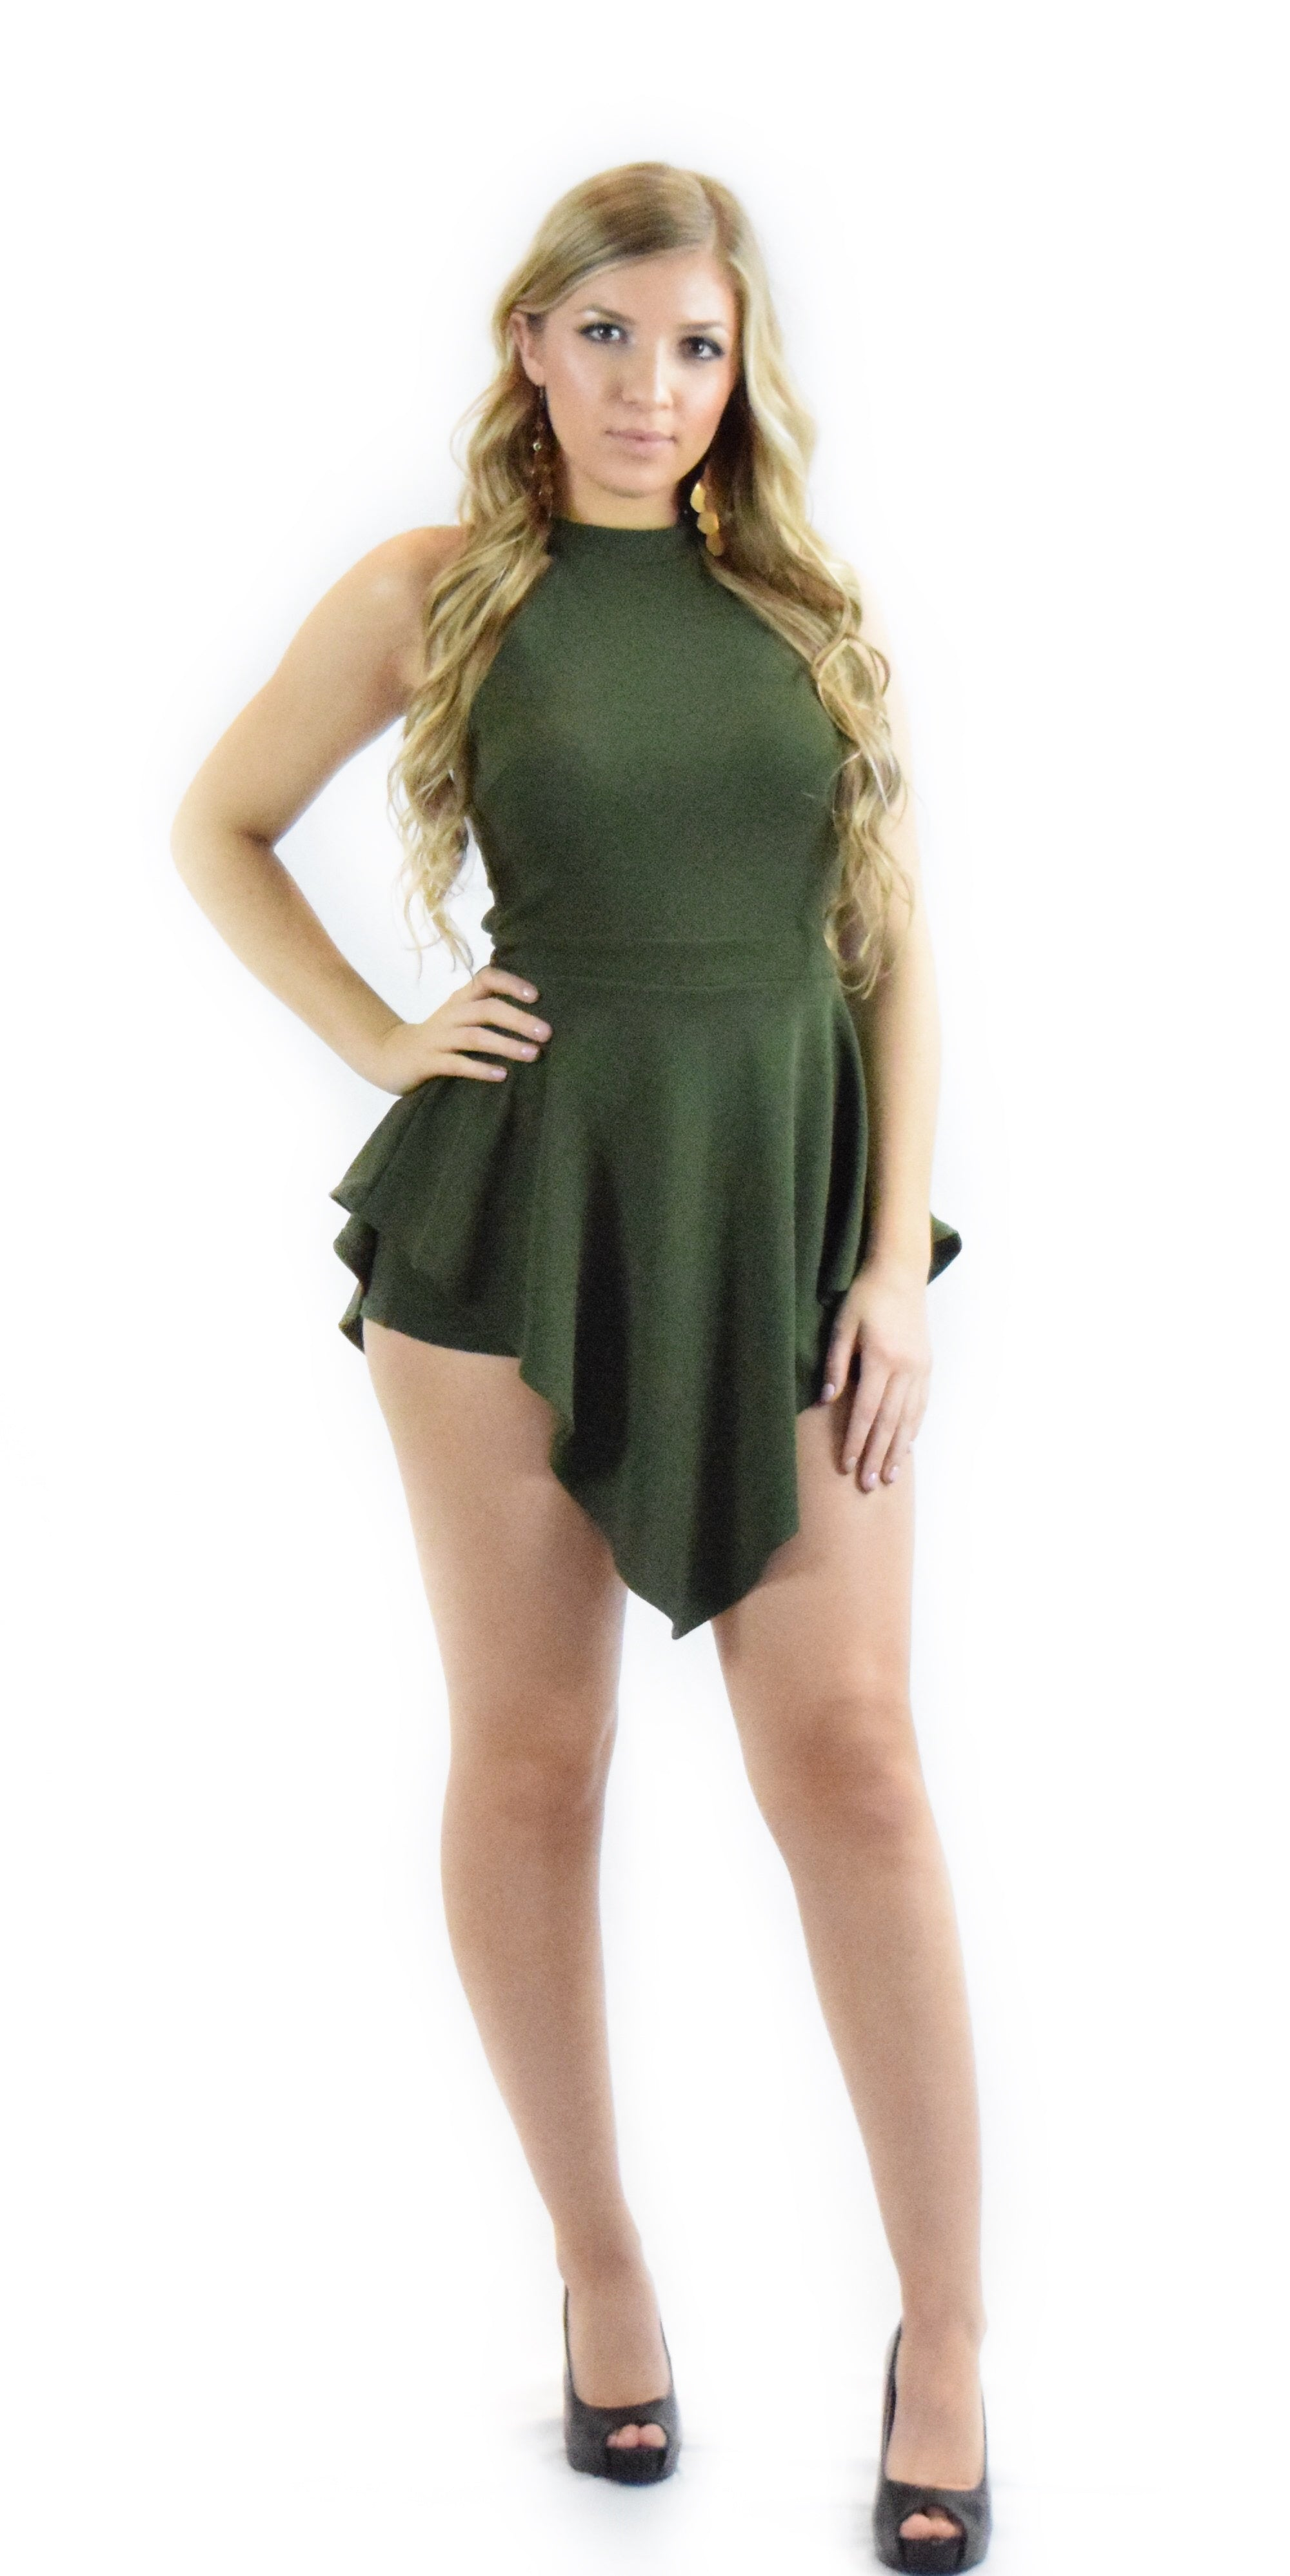 olive romper shorts fancy dressy zipper neck chocker fashion clothing woman trending style